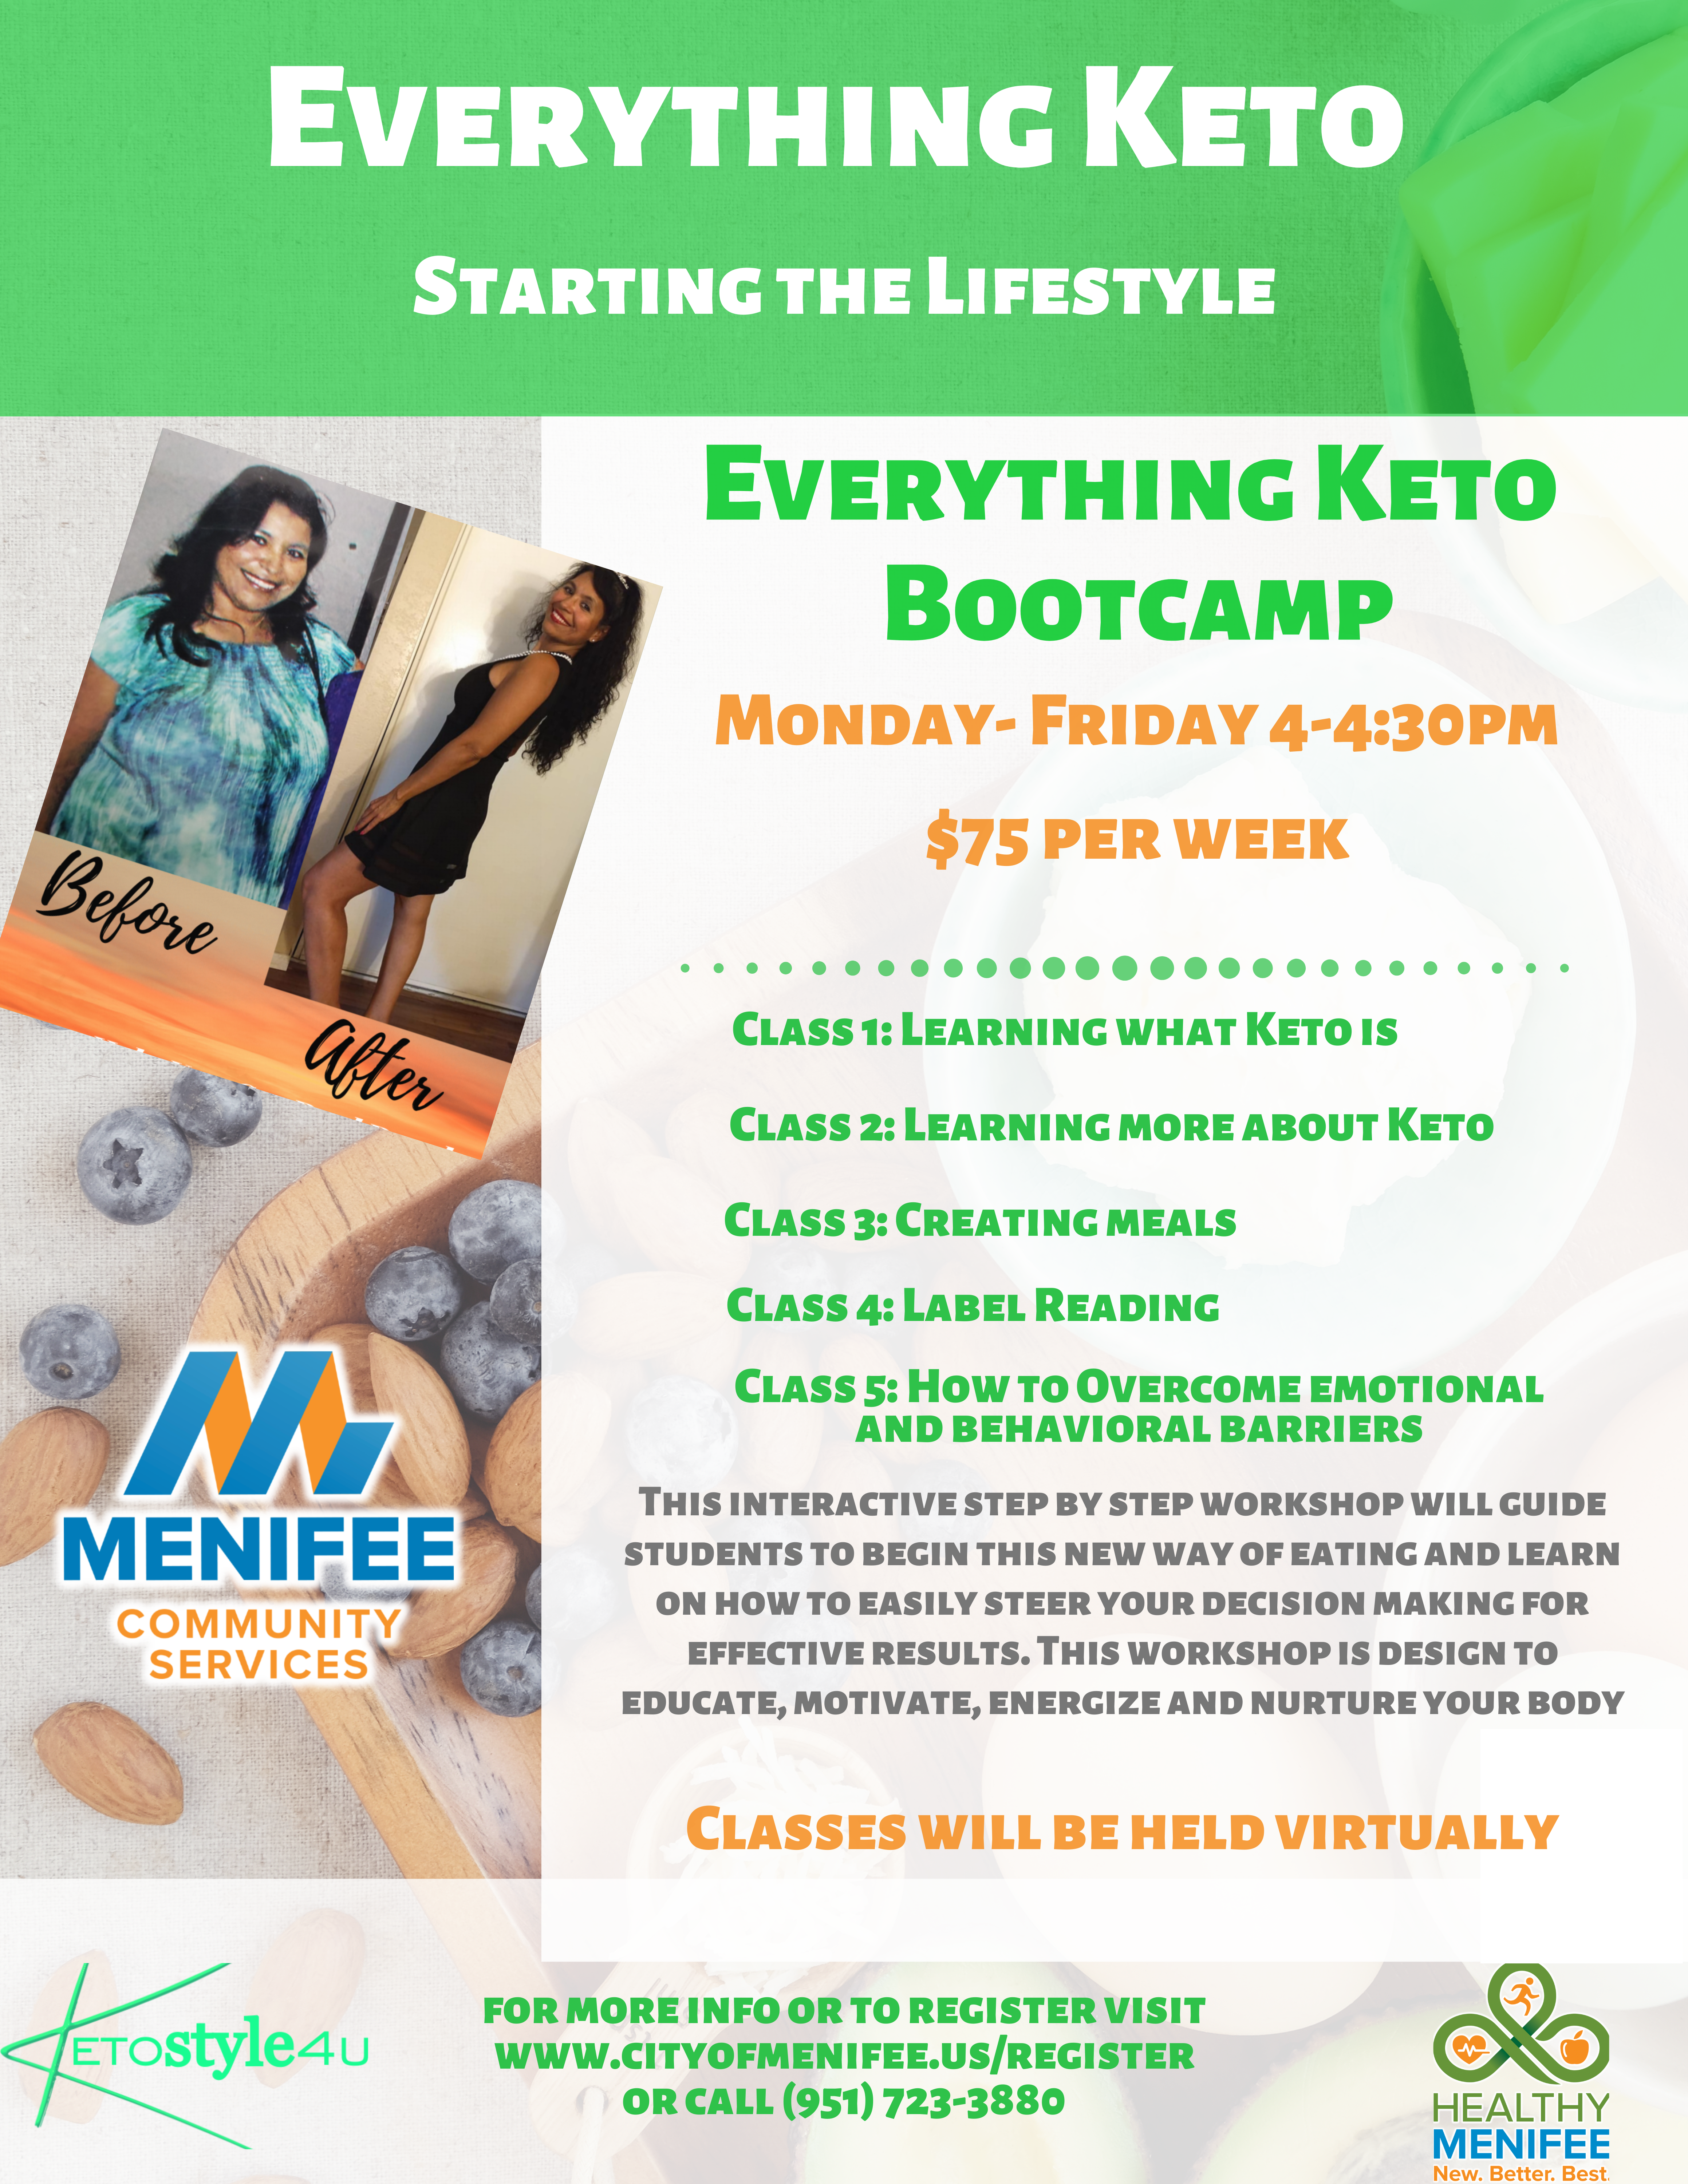 Everything Keto Program Flyer: Everything Keto Bootcamp Informational Course